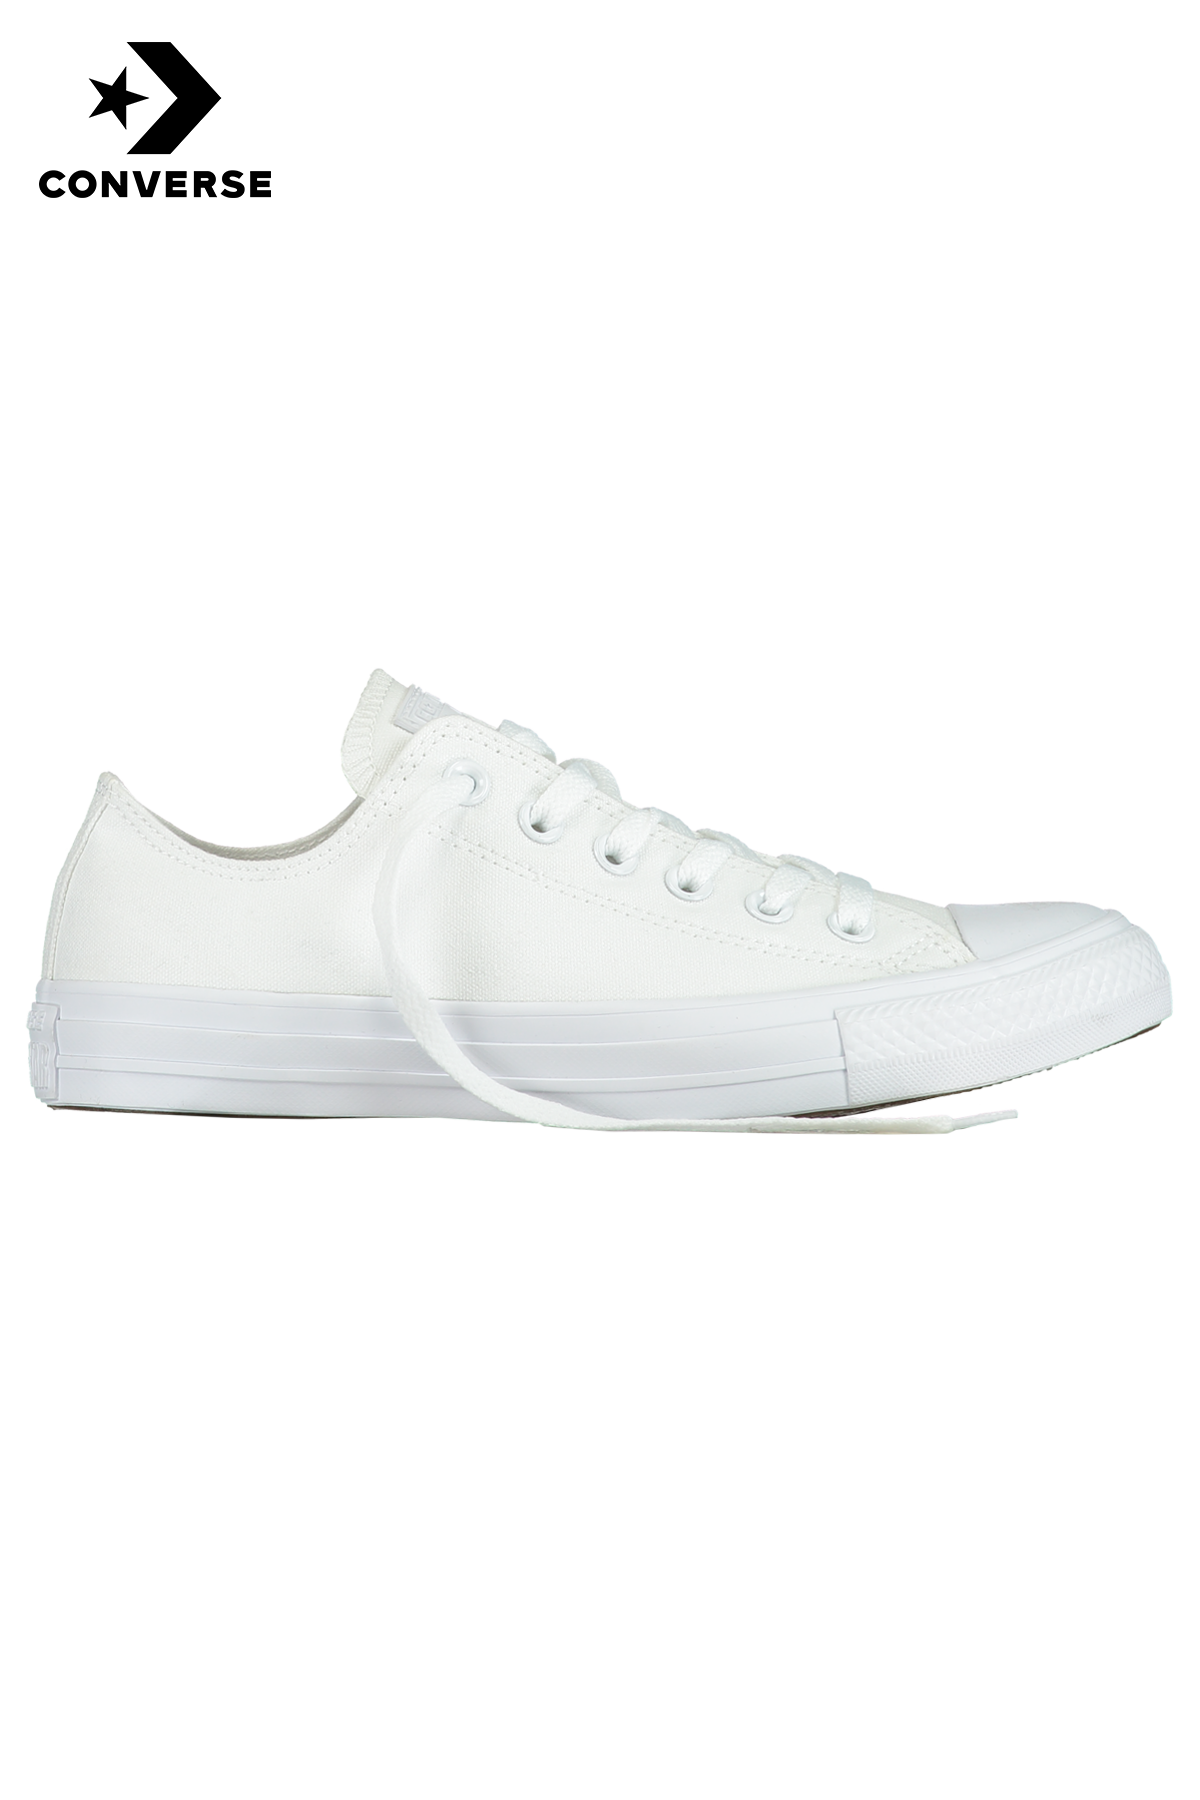 Converse All Stars OX low